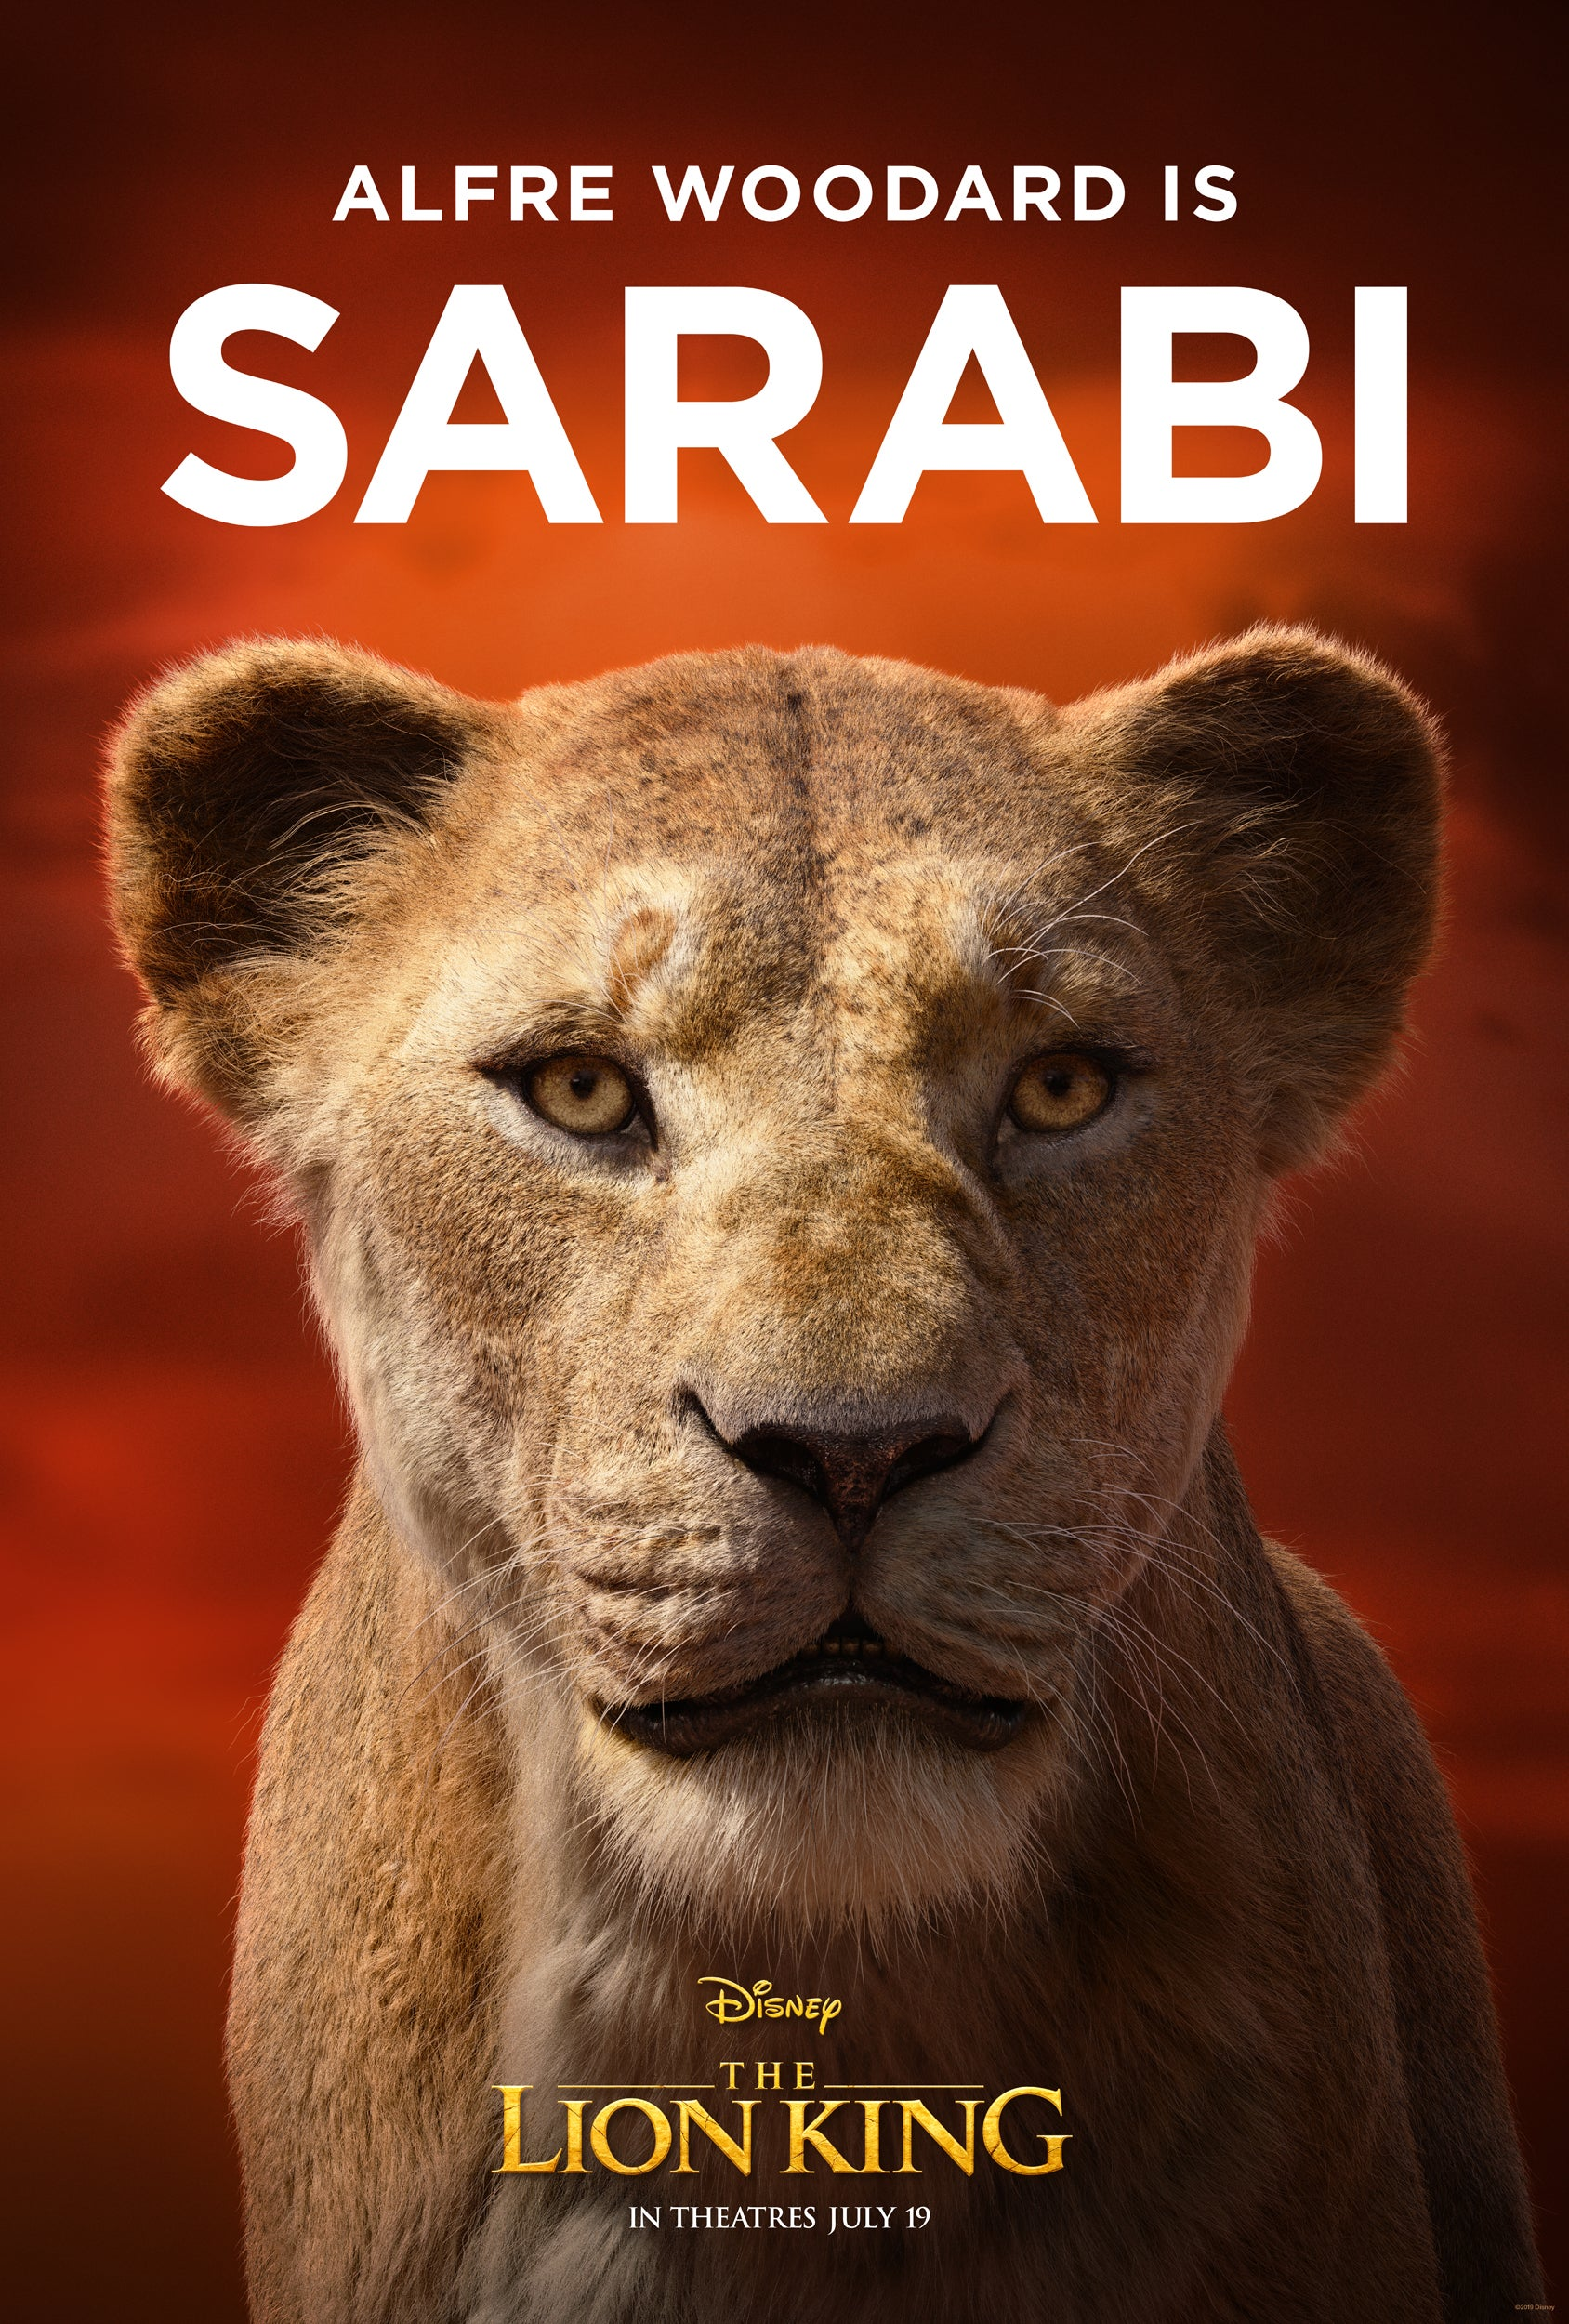 The Lion King Posters Provide A New Look At Donald Glovers